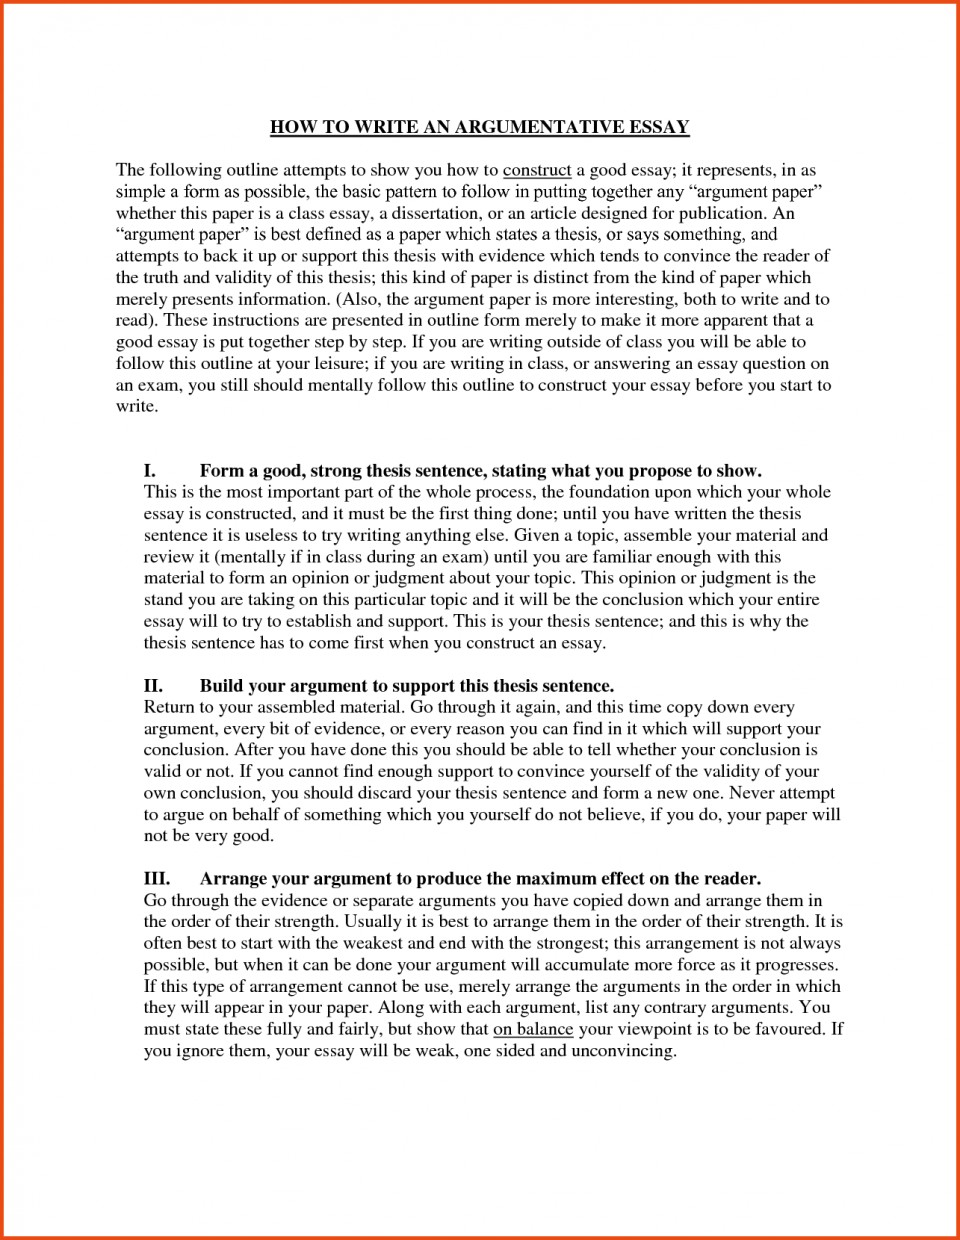 004 How To Start Good Essay Example Brilliant Ideas Of Ways An Aboutelf Dissertation Nice Photo Awesome A Sentence For College Introduction 960